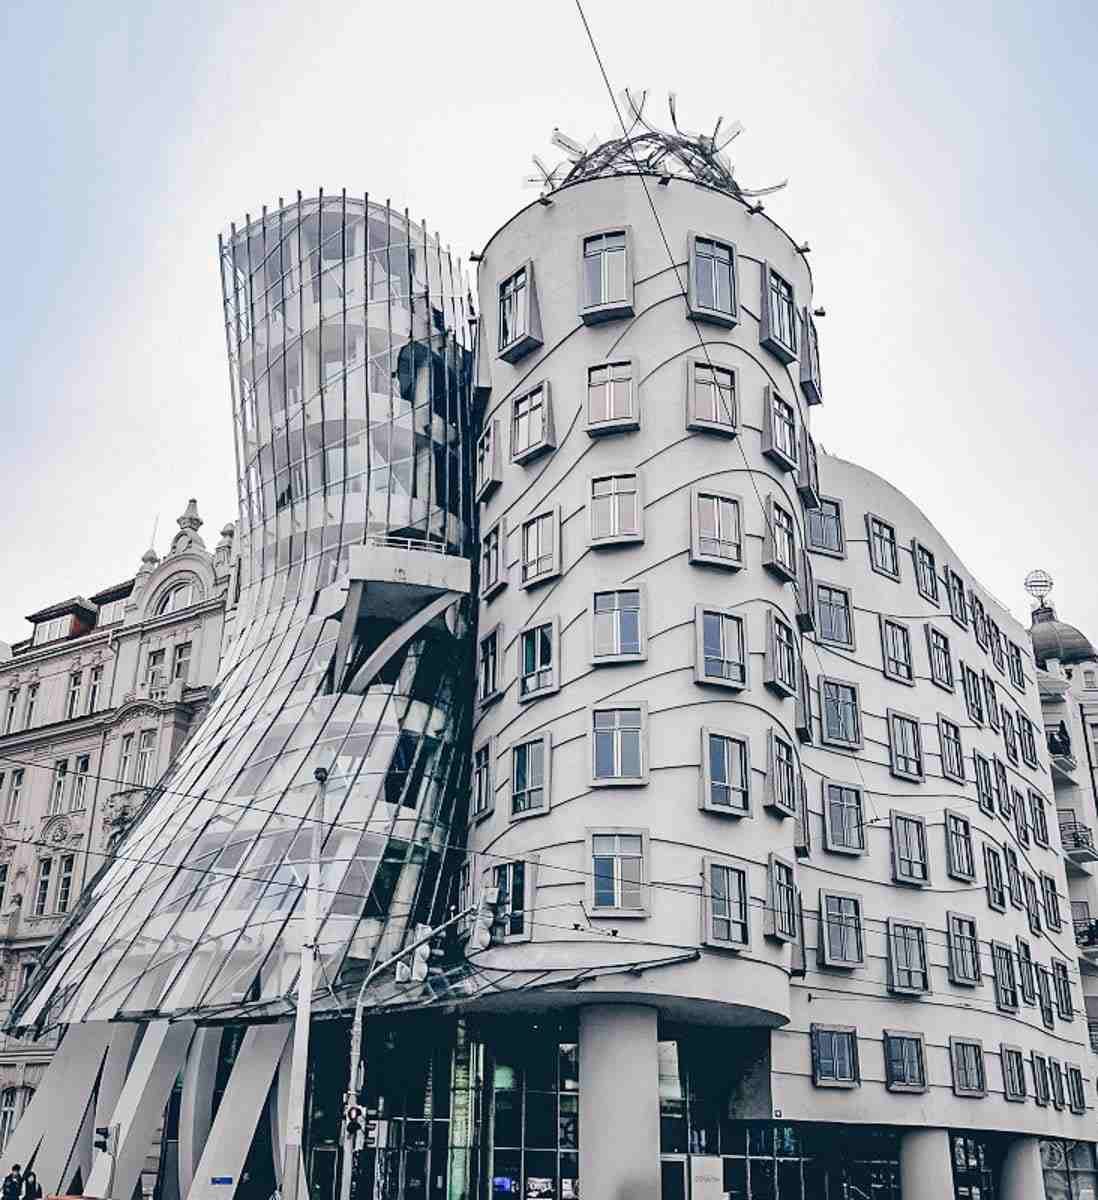 Instagram locations in Prague: The famous Dancing House building, named after Fred Astaire & Ginger Rogers.